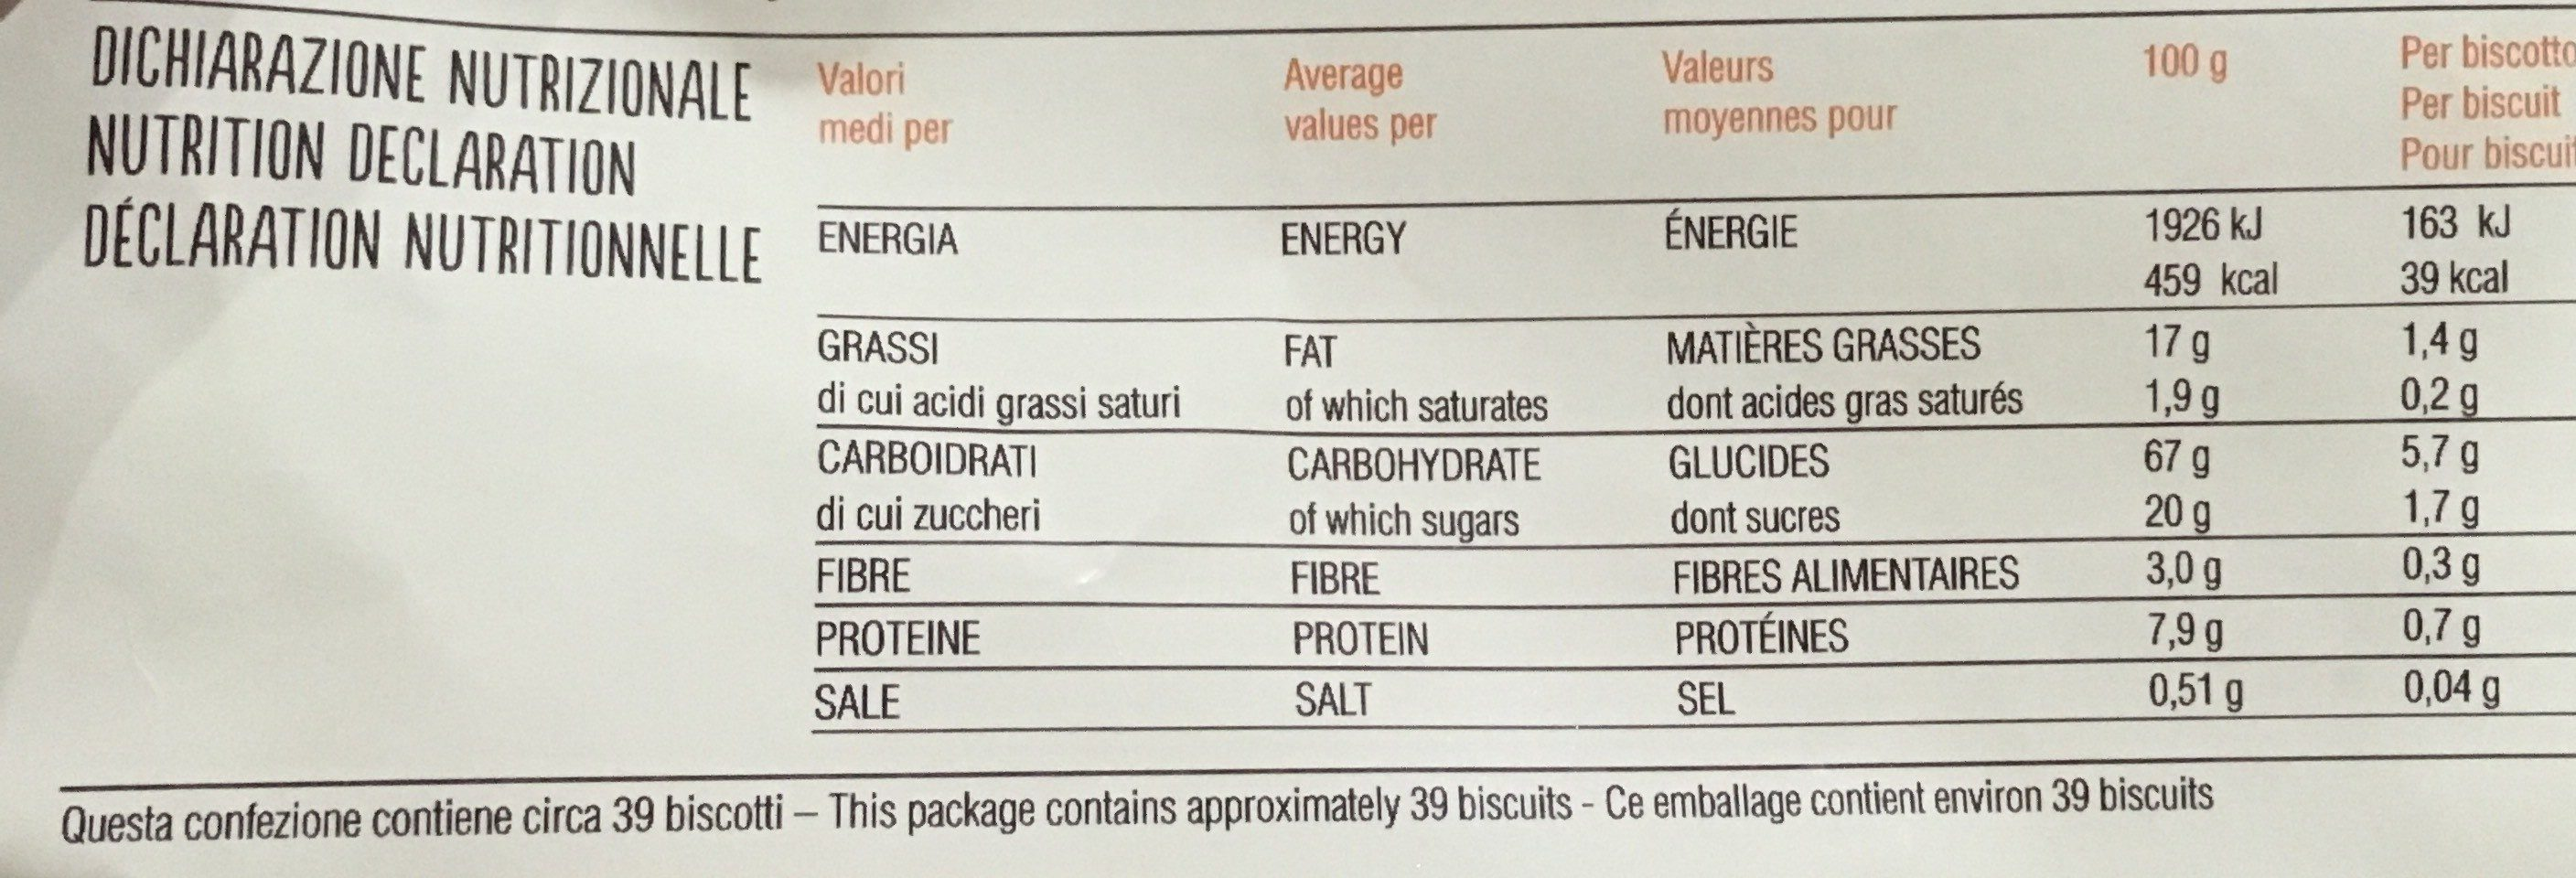 Multigrain - Biscotti ai 6 cereali - Nutrition facts